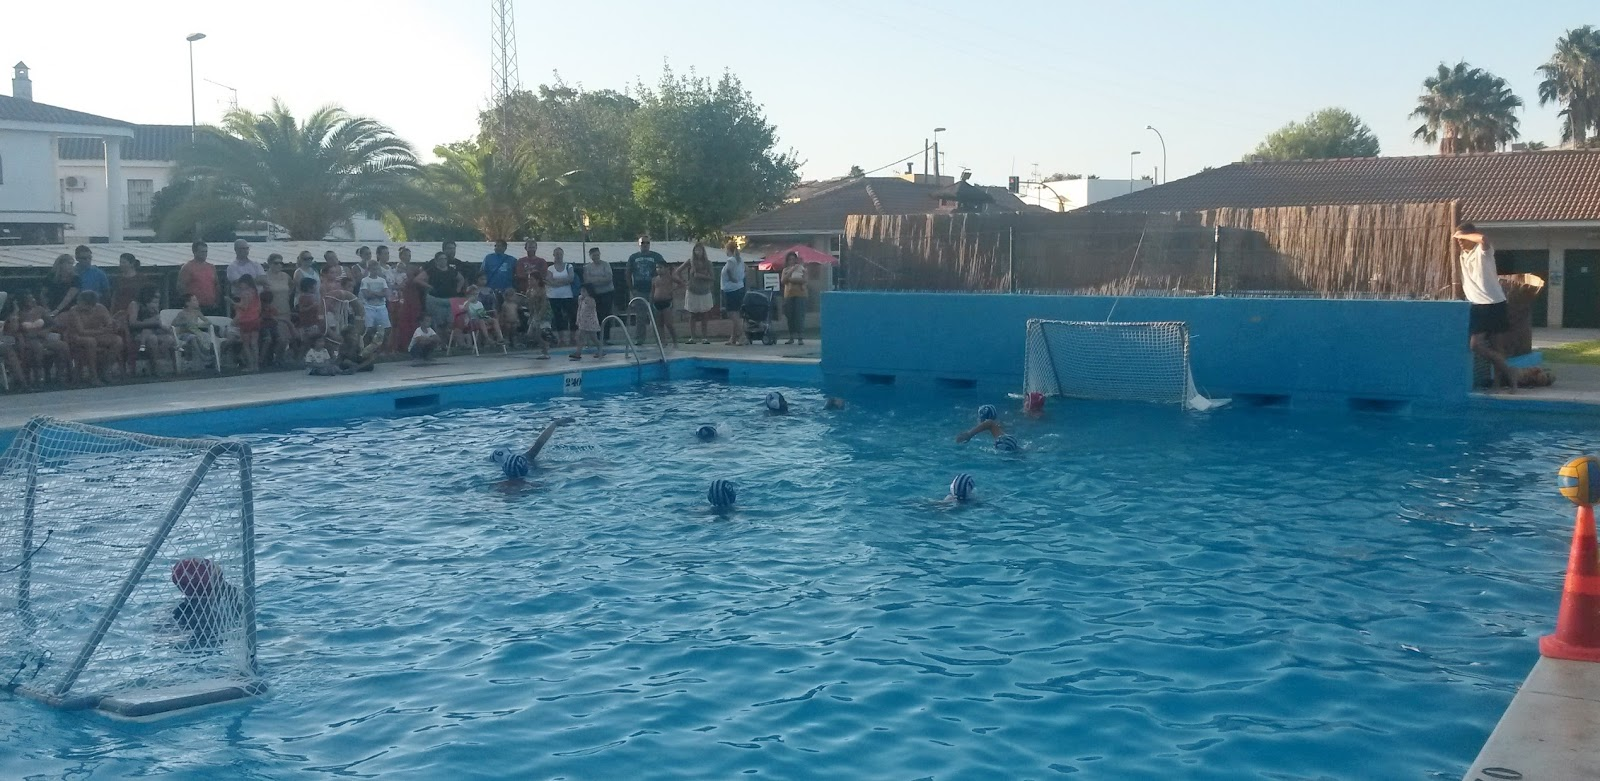 Piscina Waterpolo Cnj Waterpolo El Waterpolo Llega A Guadalcacín De La Mano